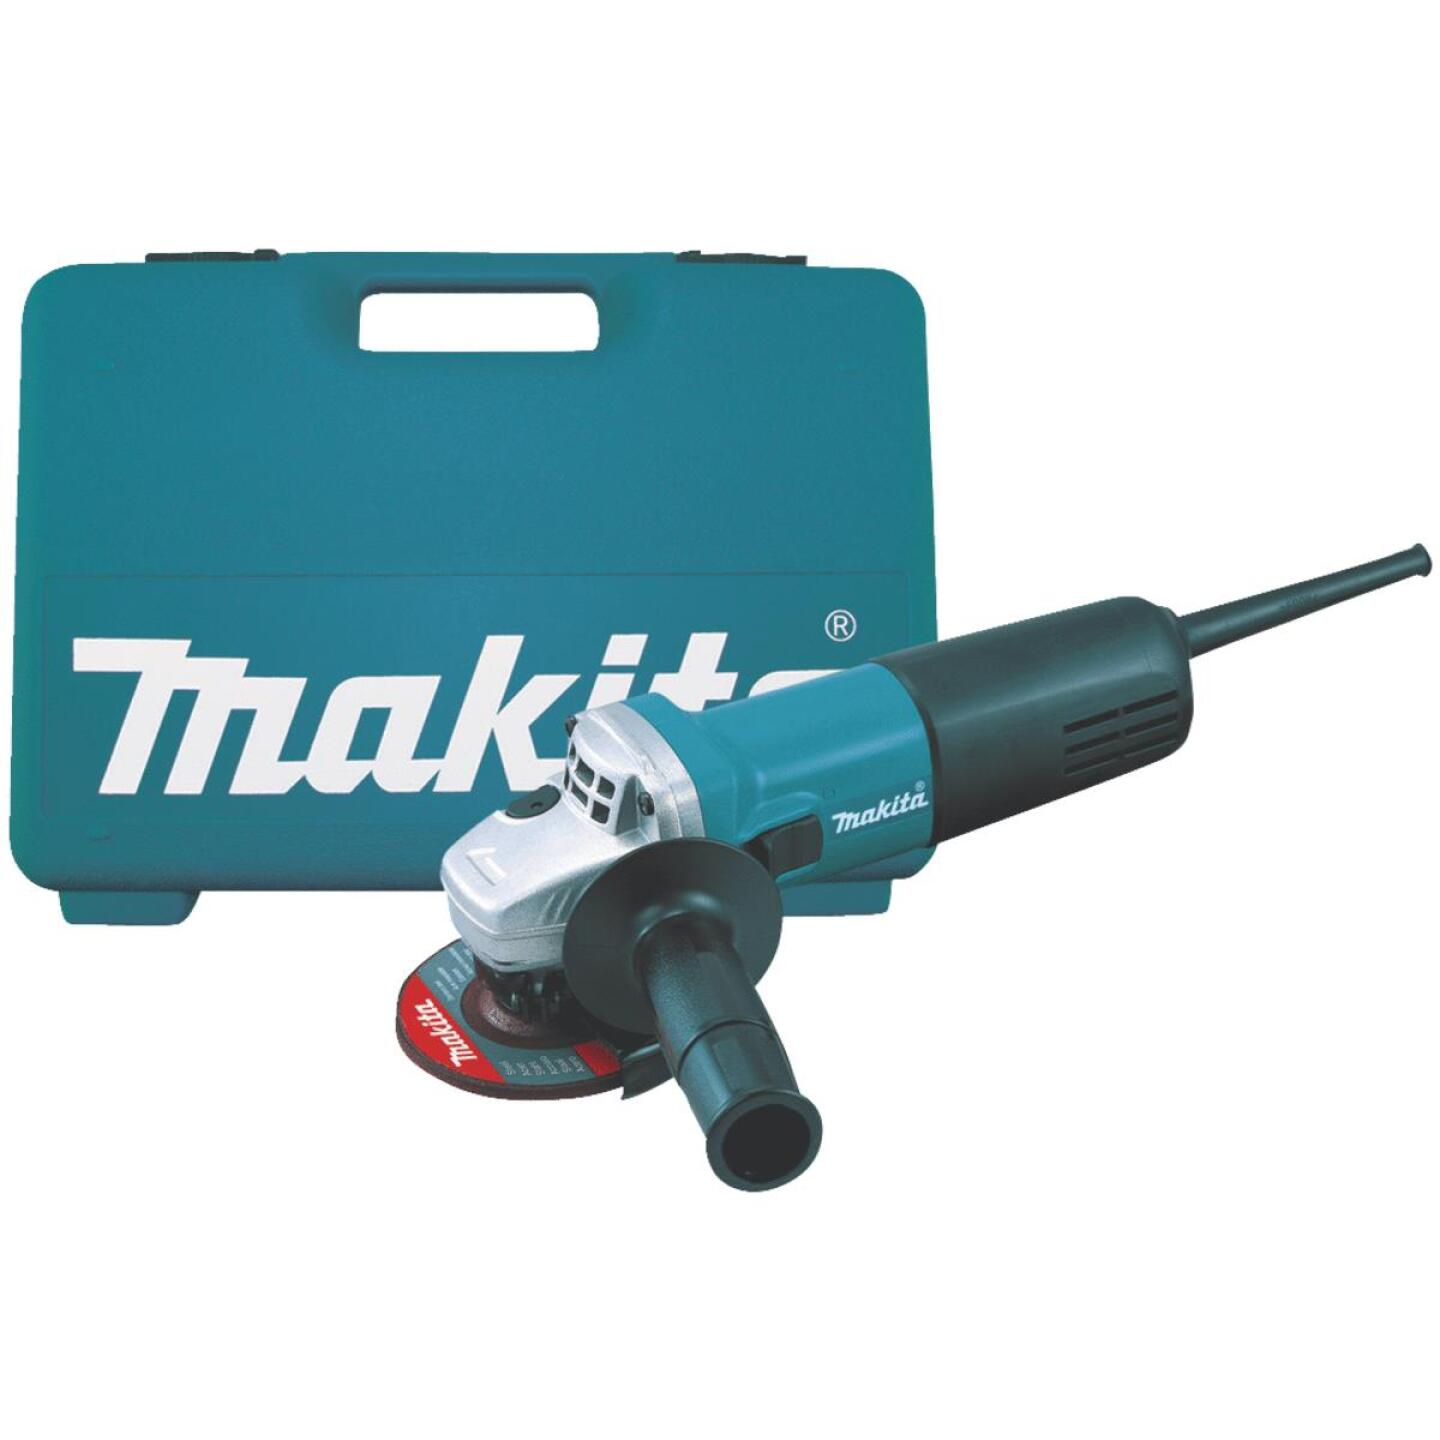 Makita 4 In. 6-Amp Angle Grinder Kit Image 1